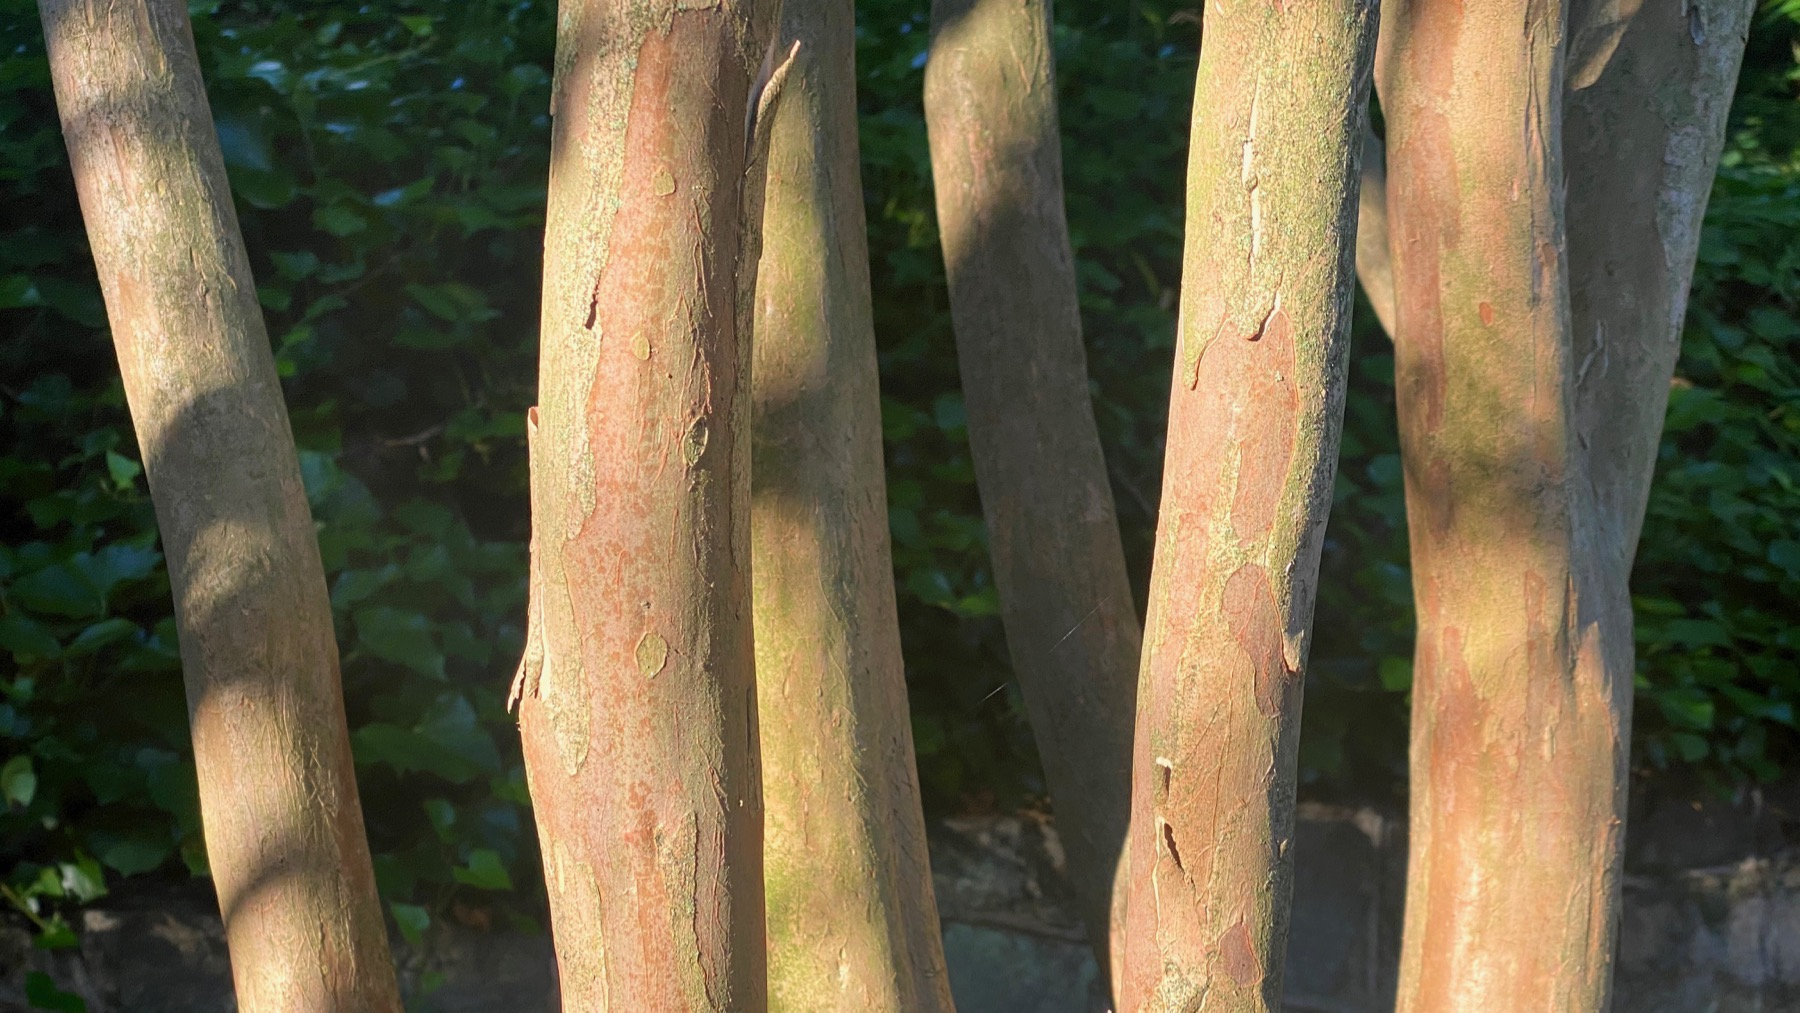 Crepe myrtle trunks